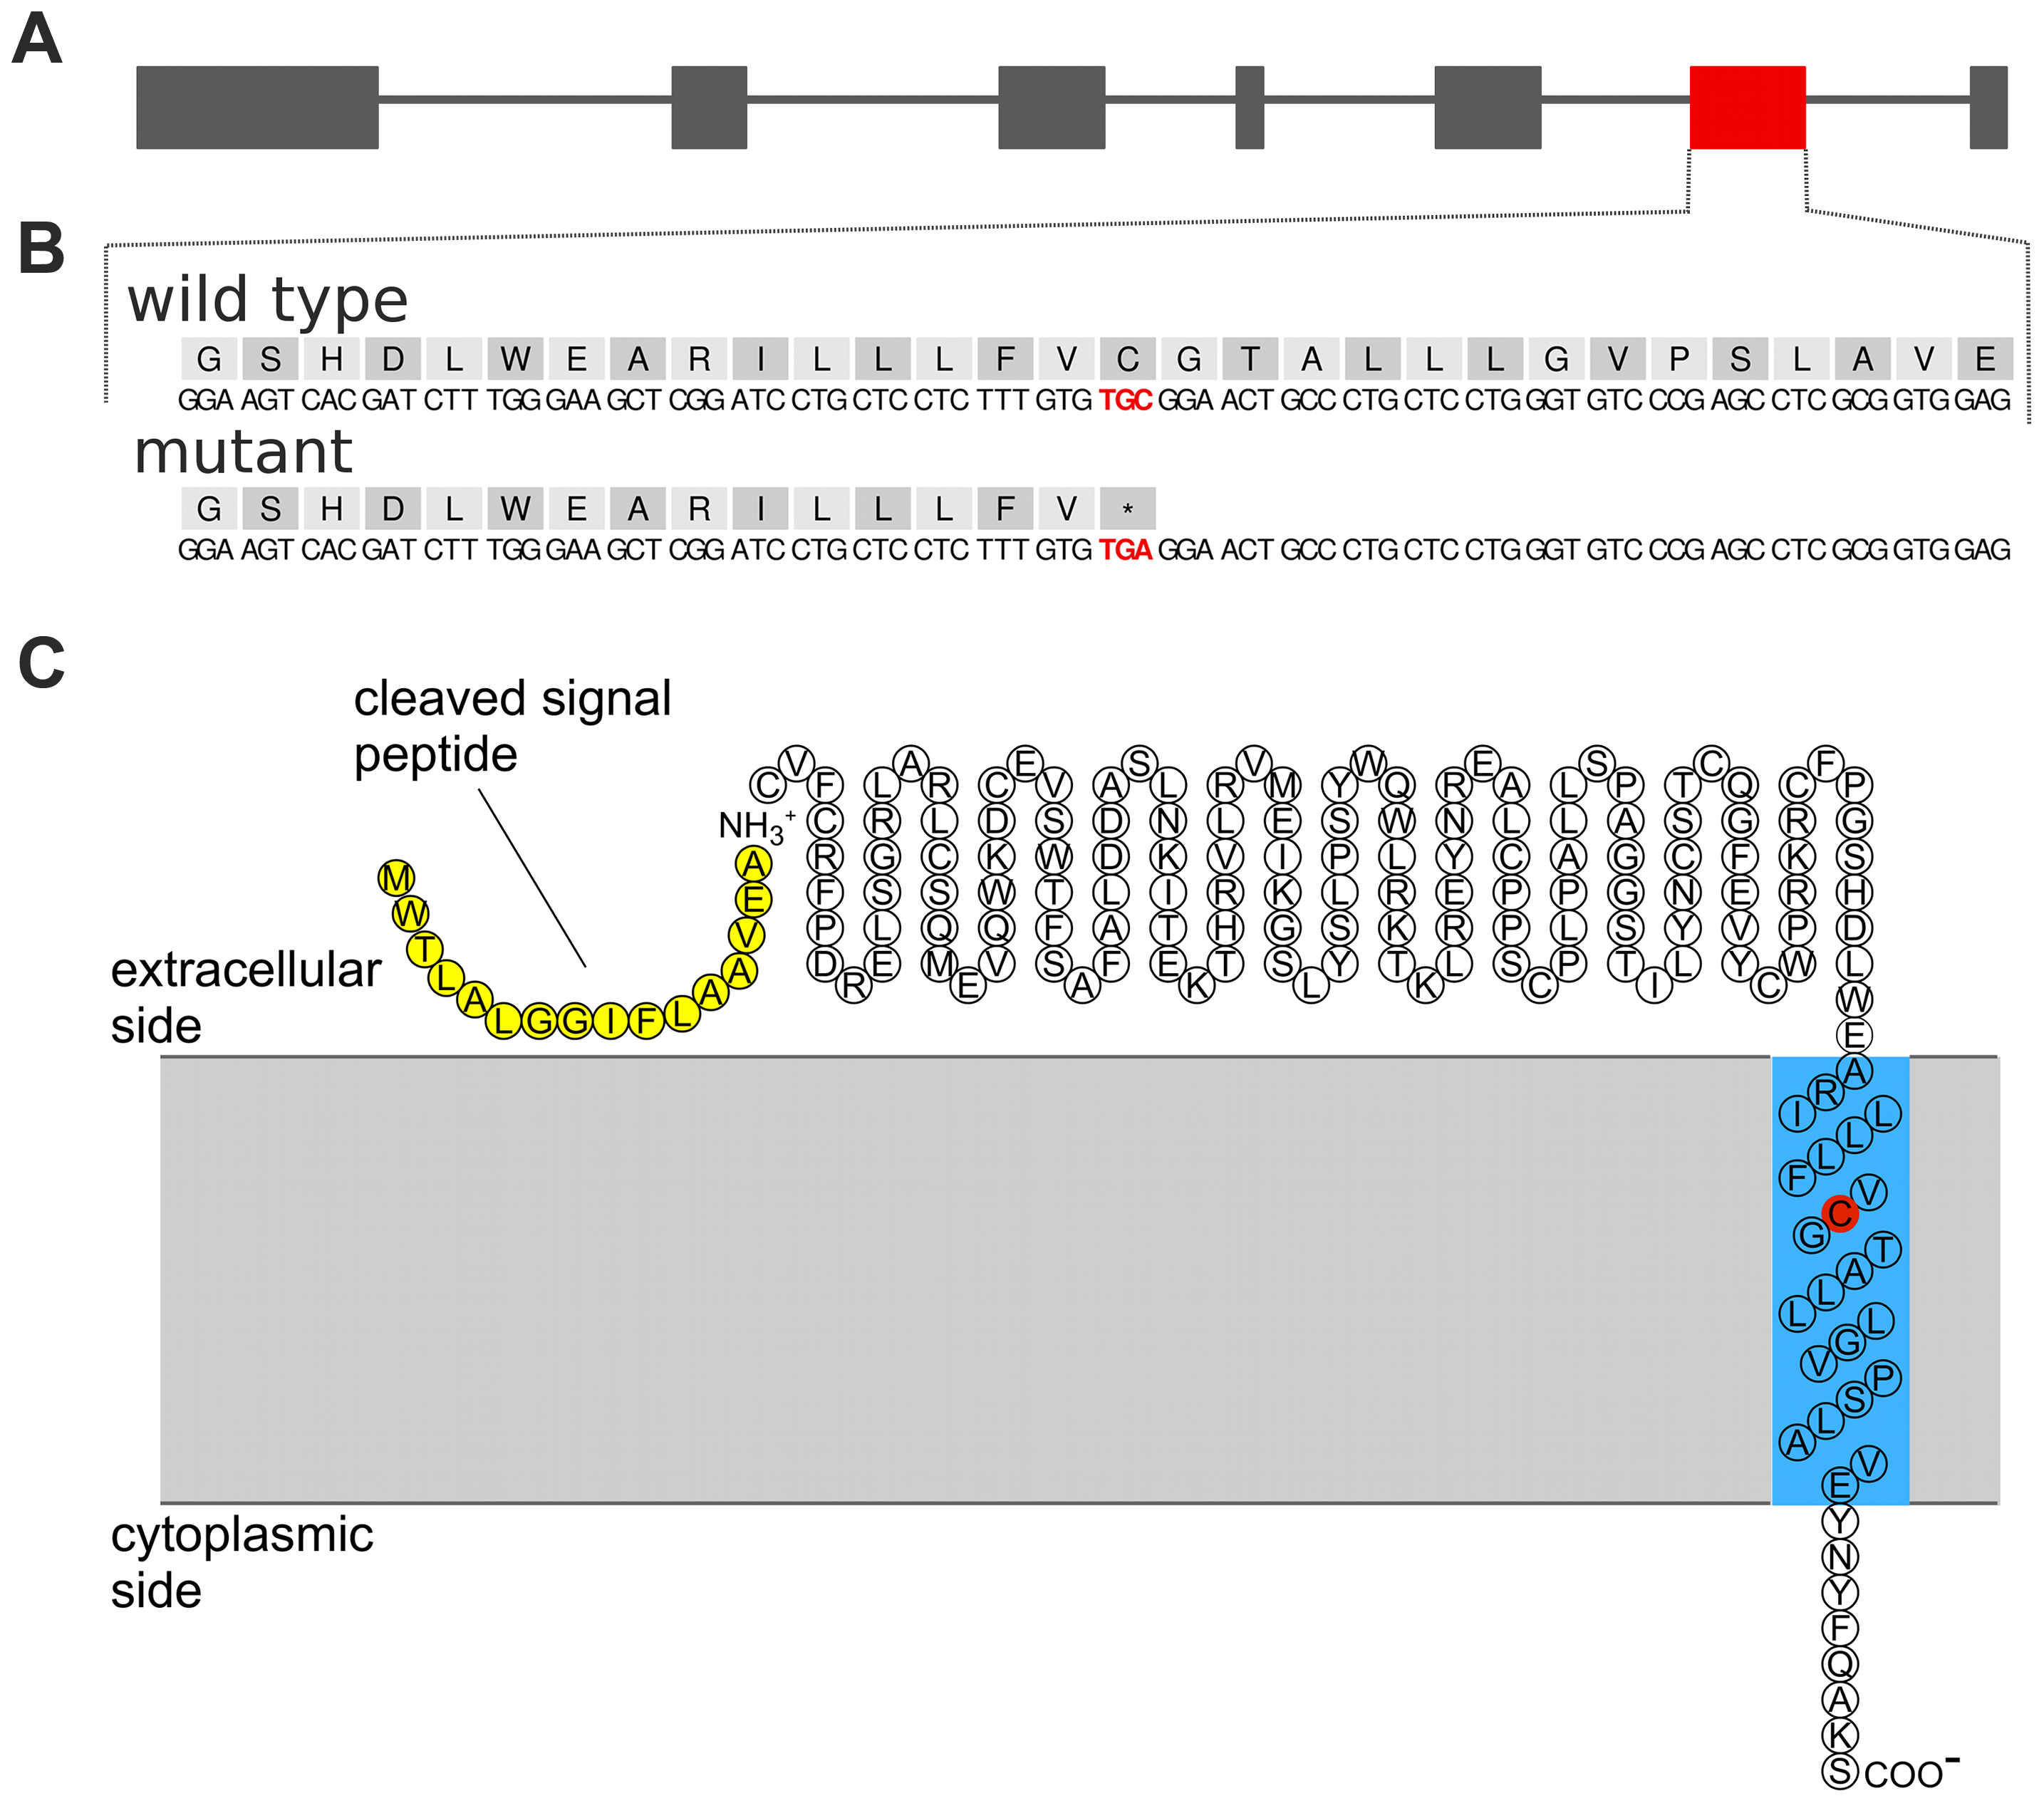 A nonsense mutation in <i>TMEM95</i> resides within the predicted transmembrane domain of the encoded transmembrane protein 95.